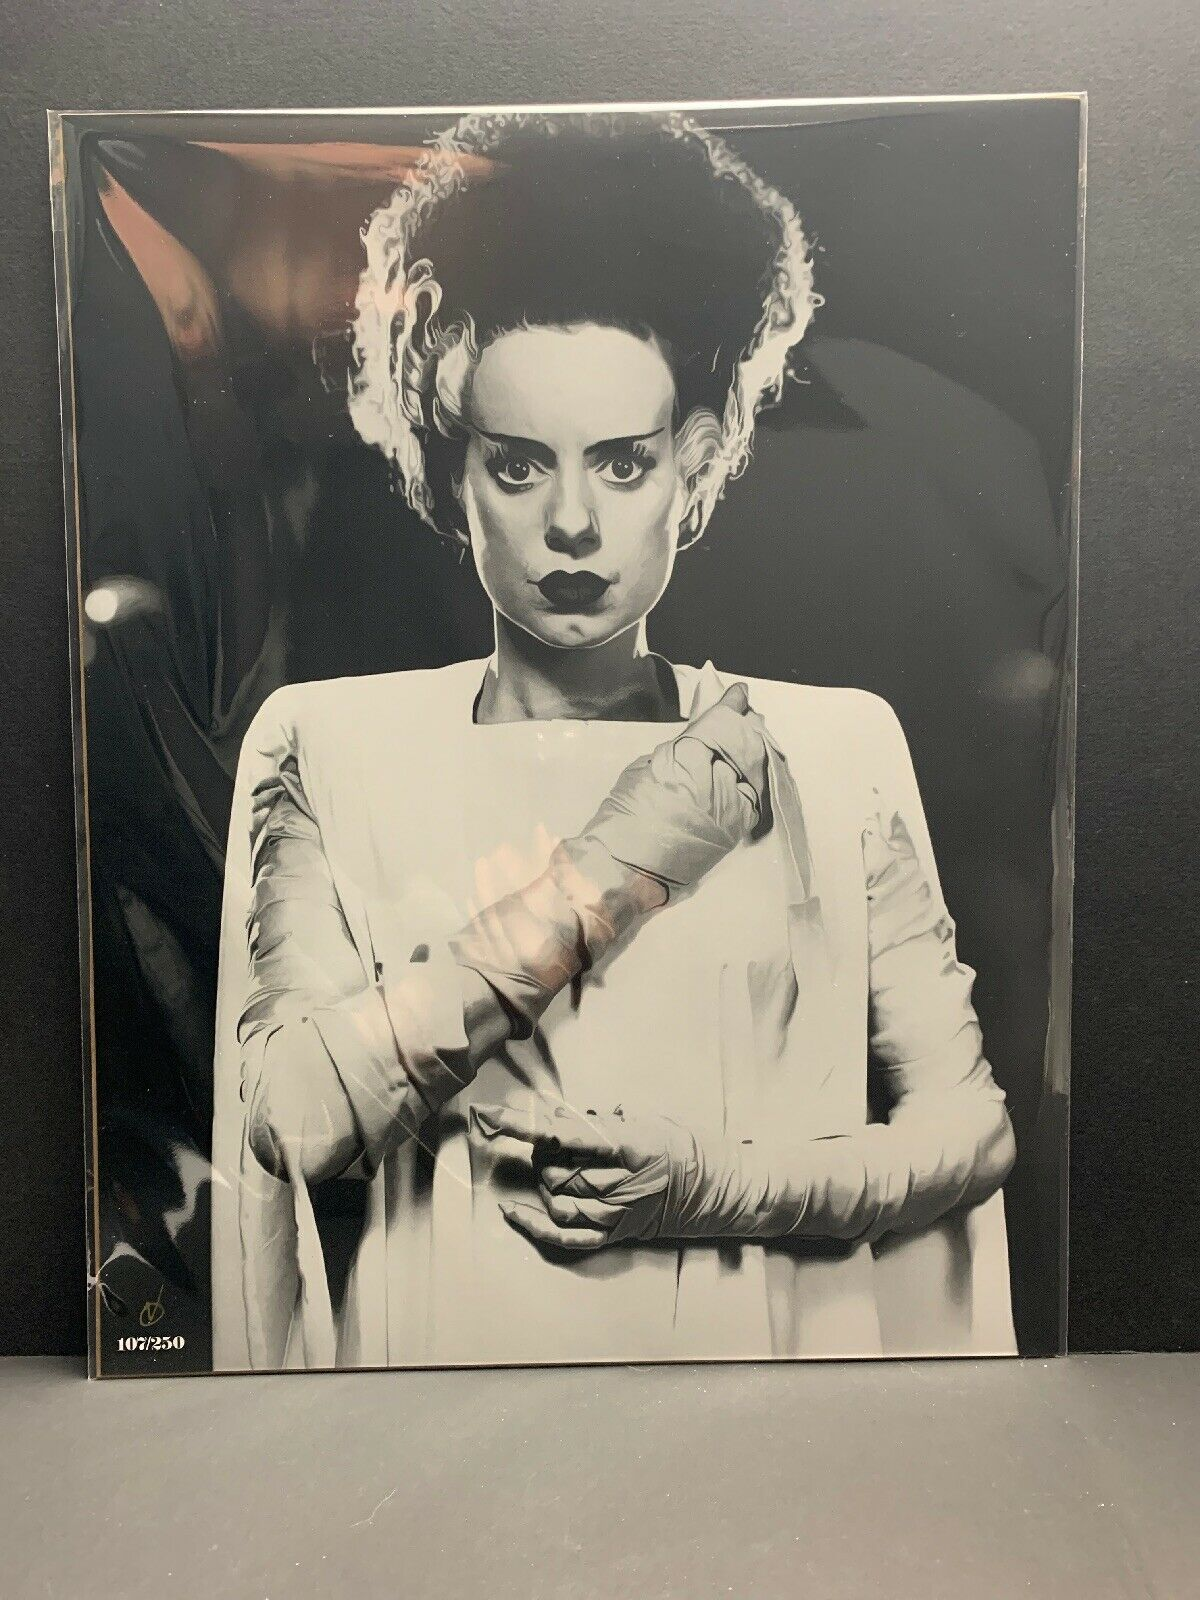 Primary image for The Bride of Frankenstein 14x11 B&W Print Famous Monsters  RARE 107/250 BAM COA